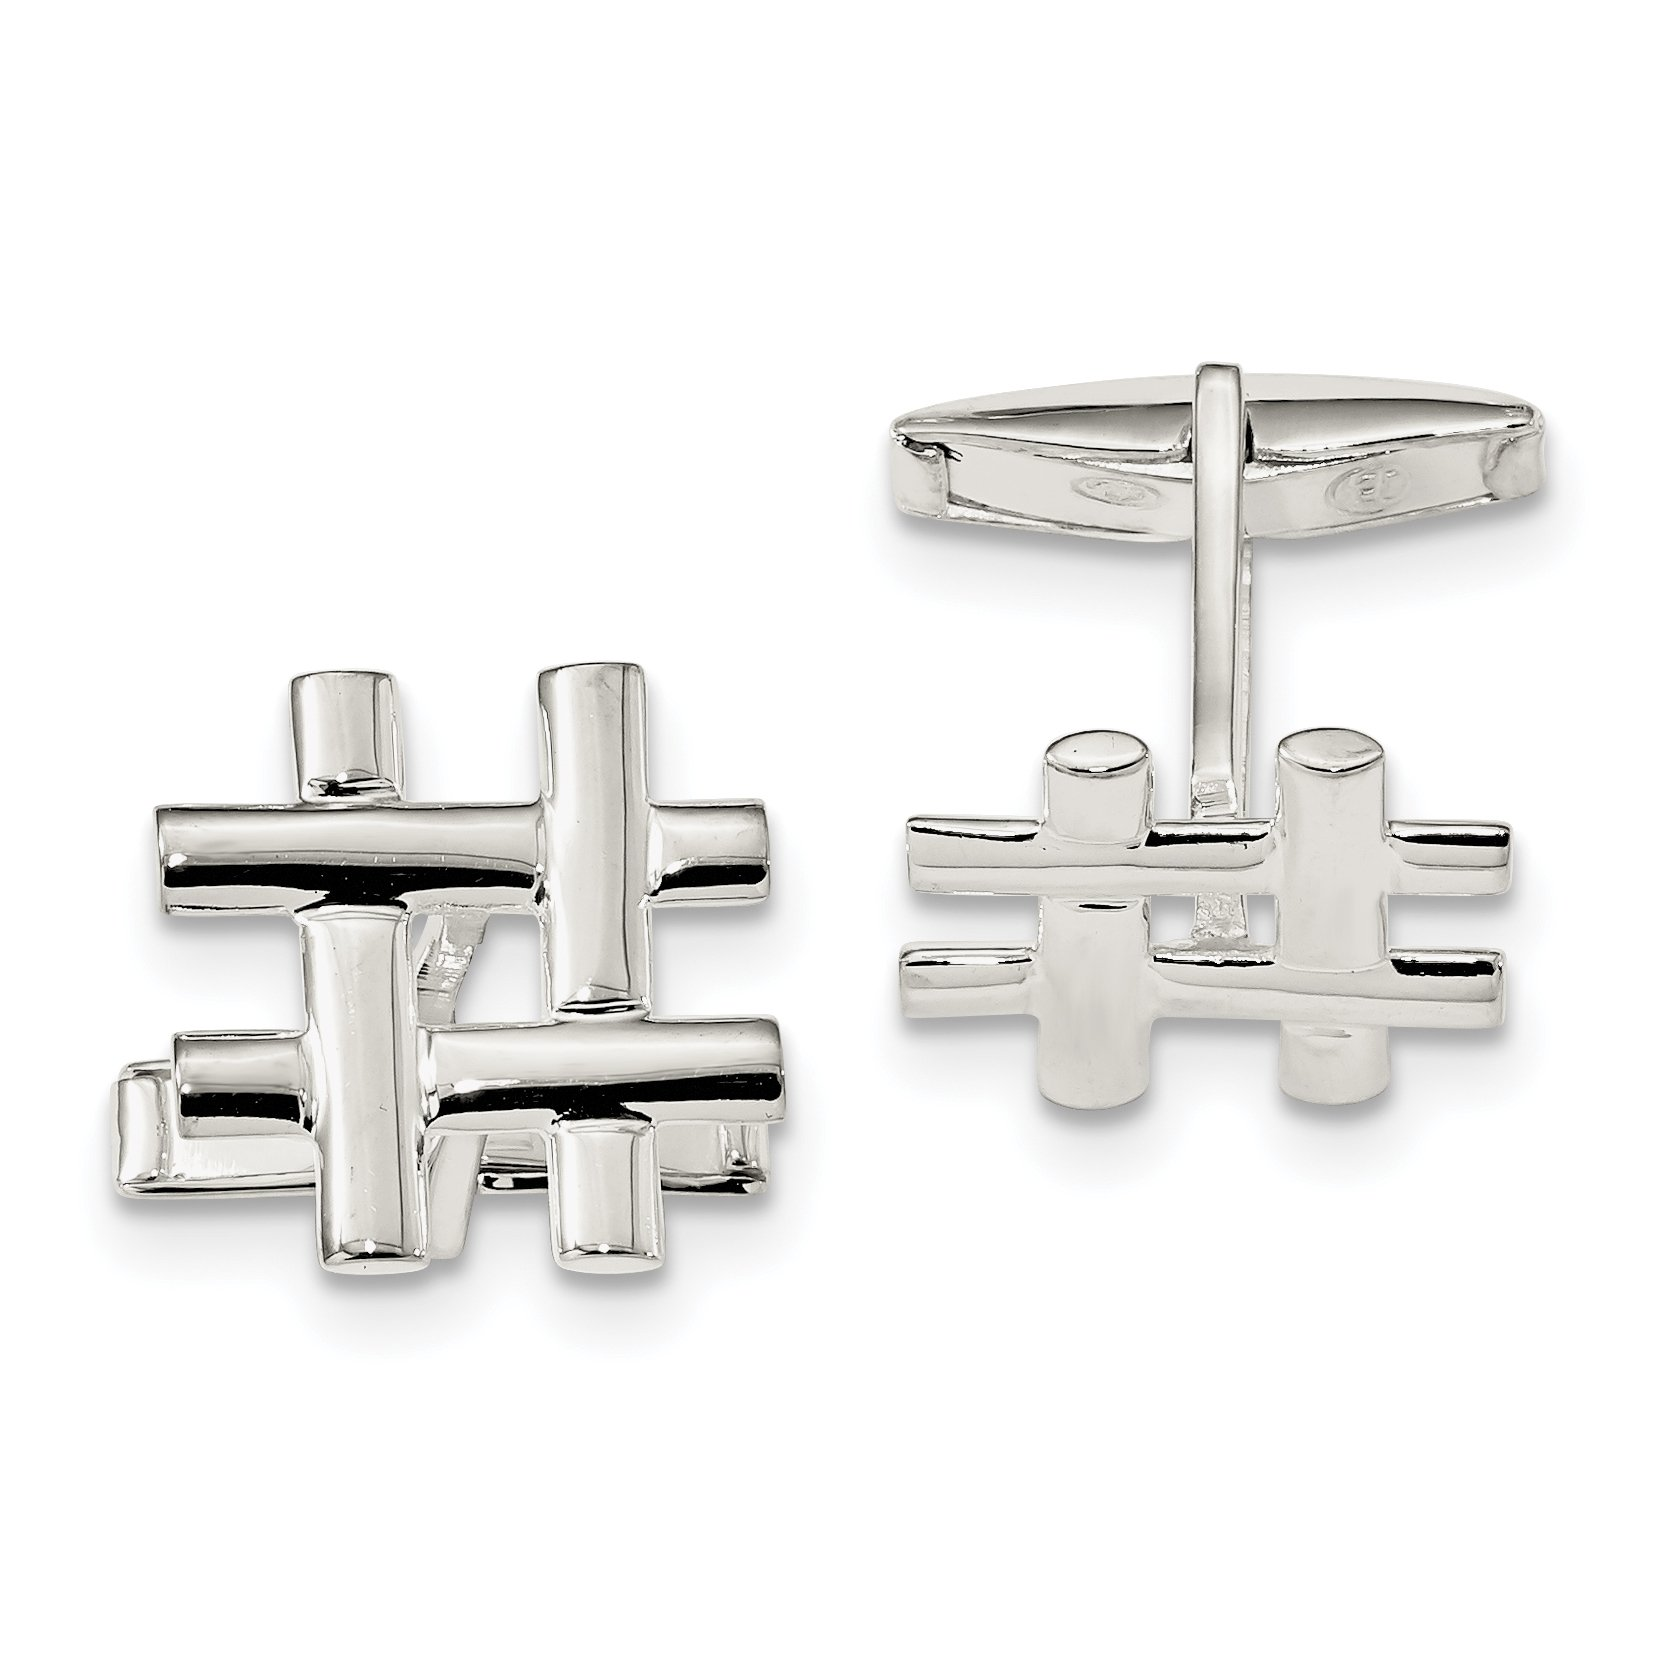 ICE CARATS 925 Sterling Silver Cuff Links Mens Cufflinks Link Fine Jewelry Dad Mens Gift Set